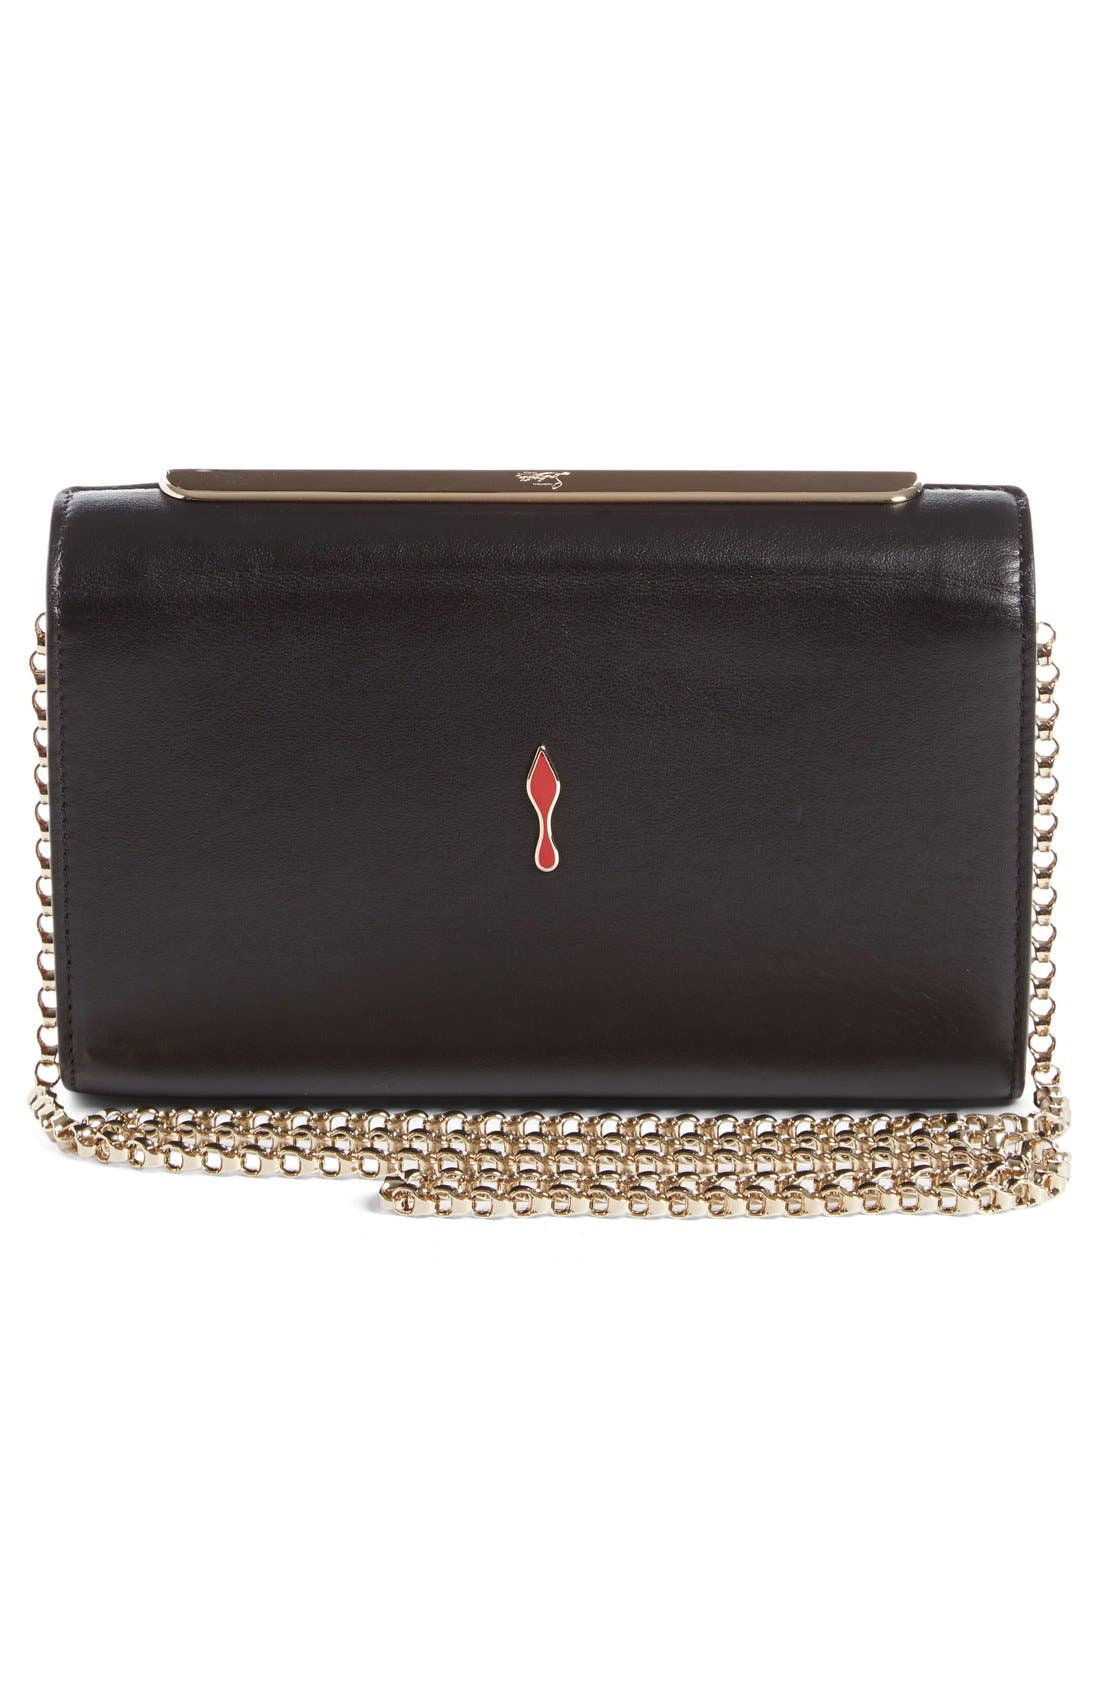 Alternate Image 3  - Christian Louboutin Vanité Metallic Leopard Leather Clutch